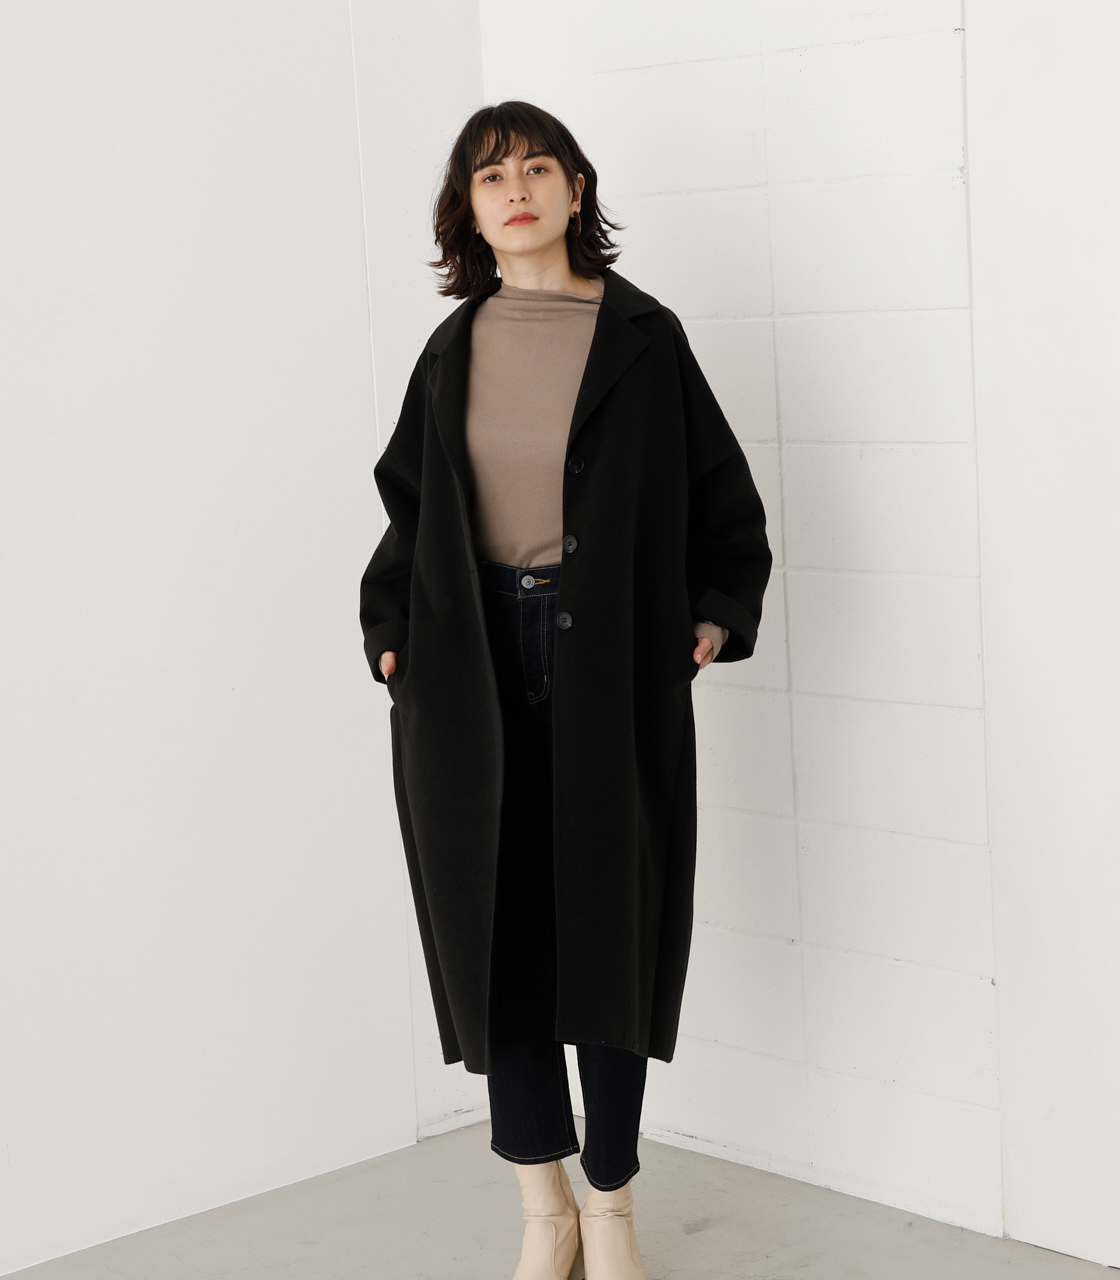 LOOSE CHESTER REVER COAT/ルーズチェスターリバーコート 詳細画像 BLK 1